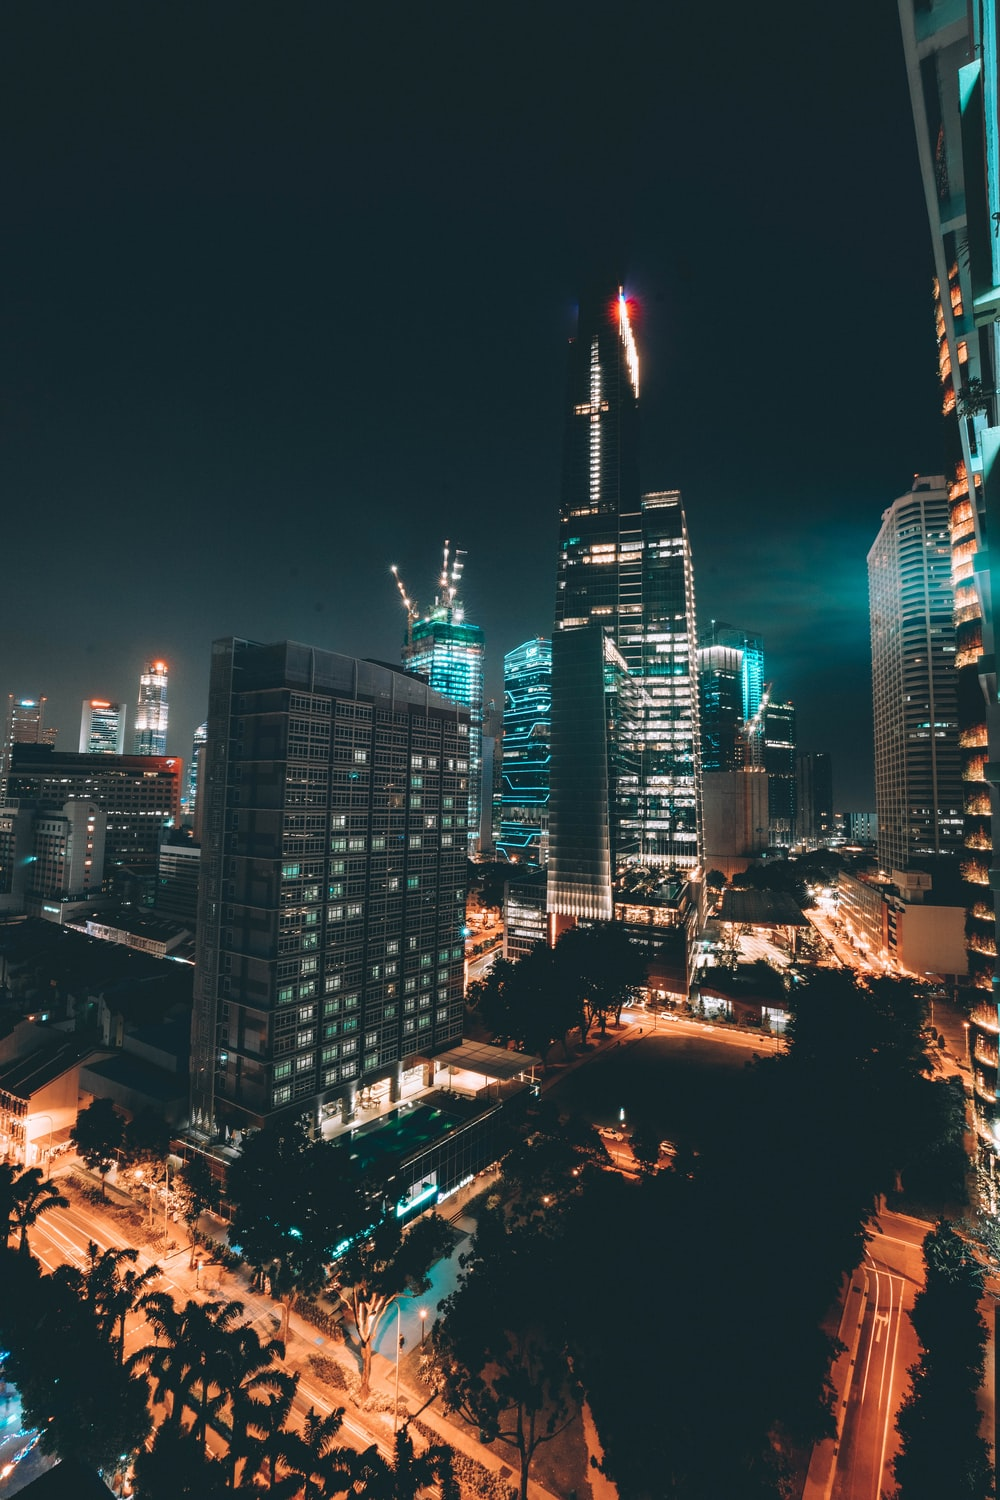 photo of lighted high-rise buildings in city during nighttime